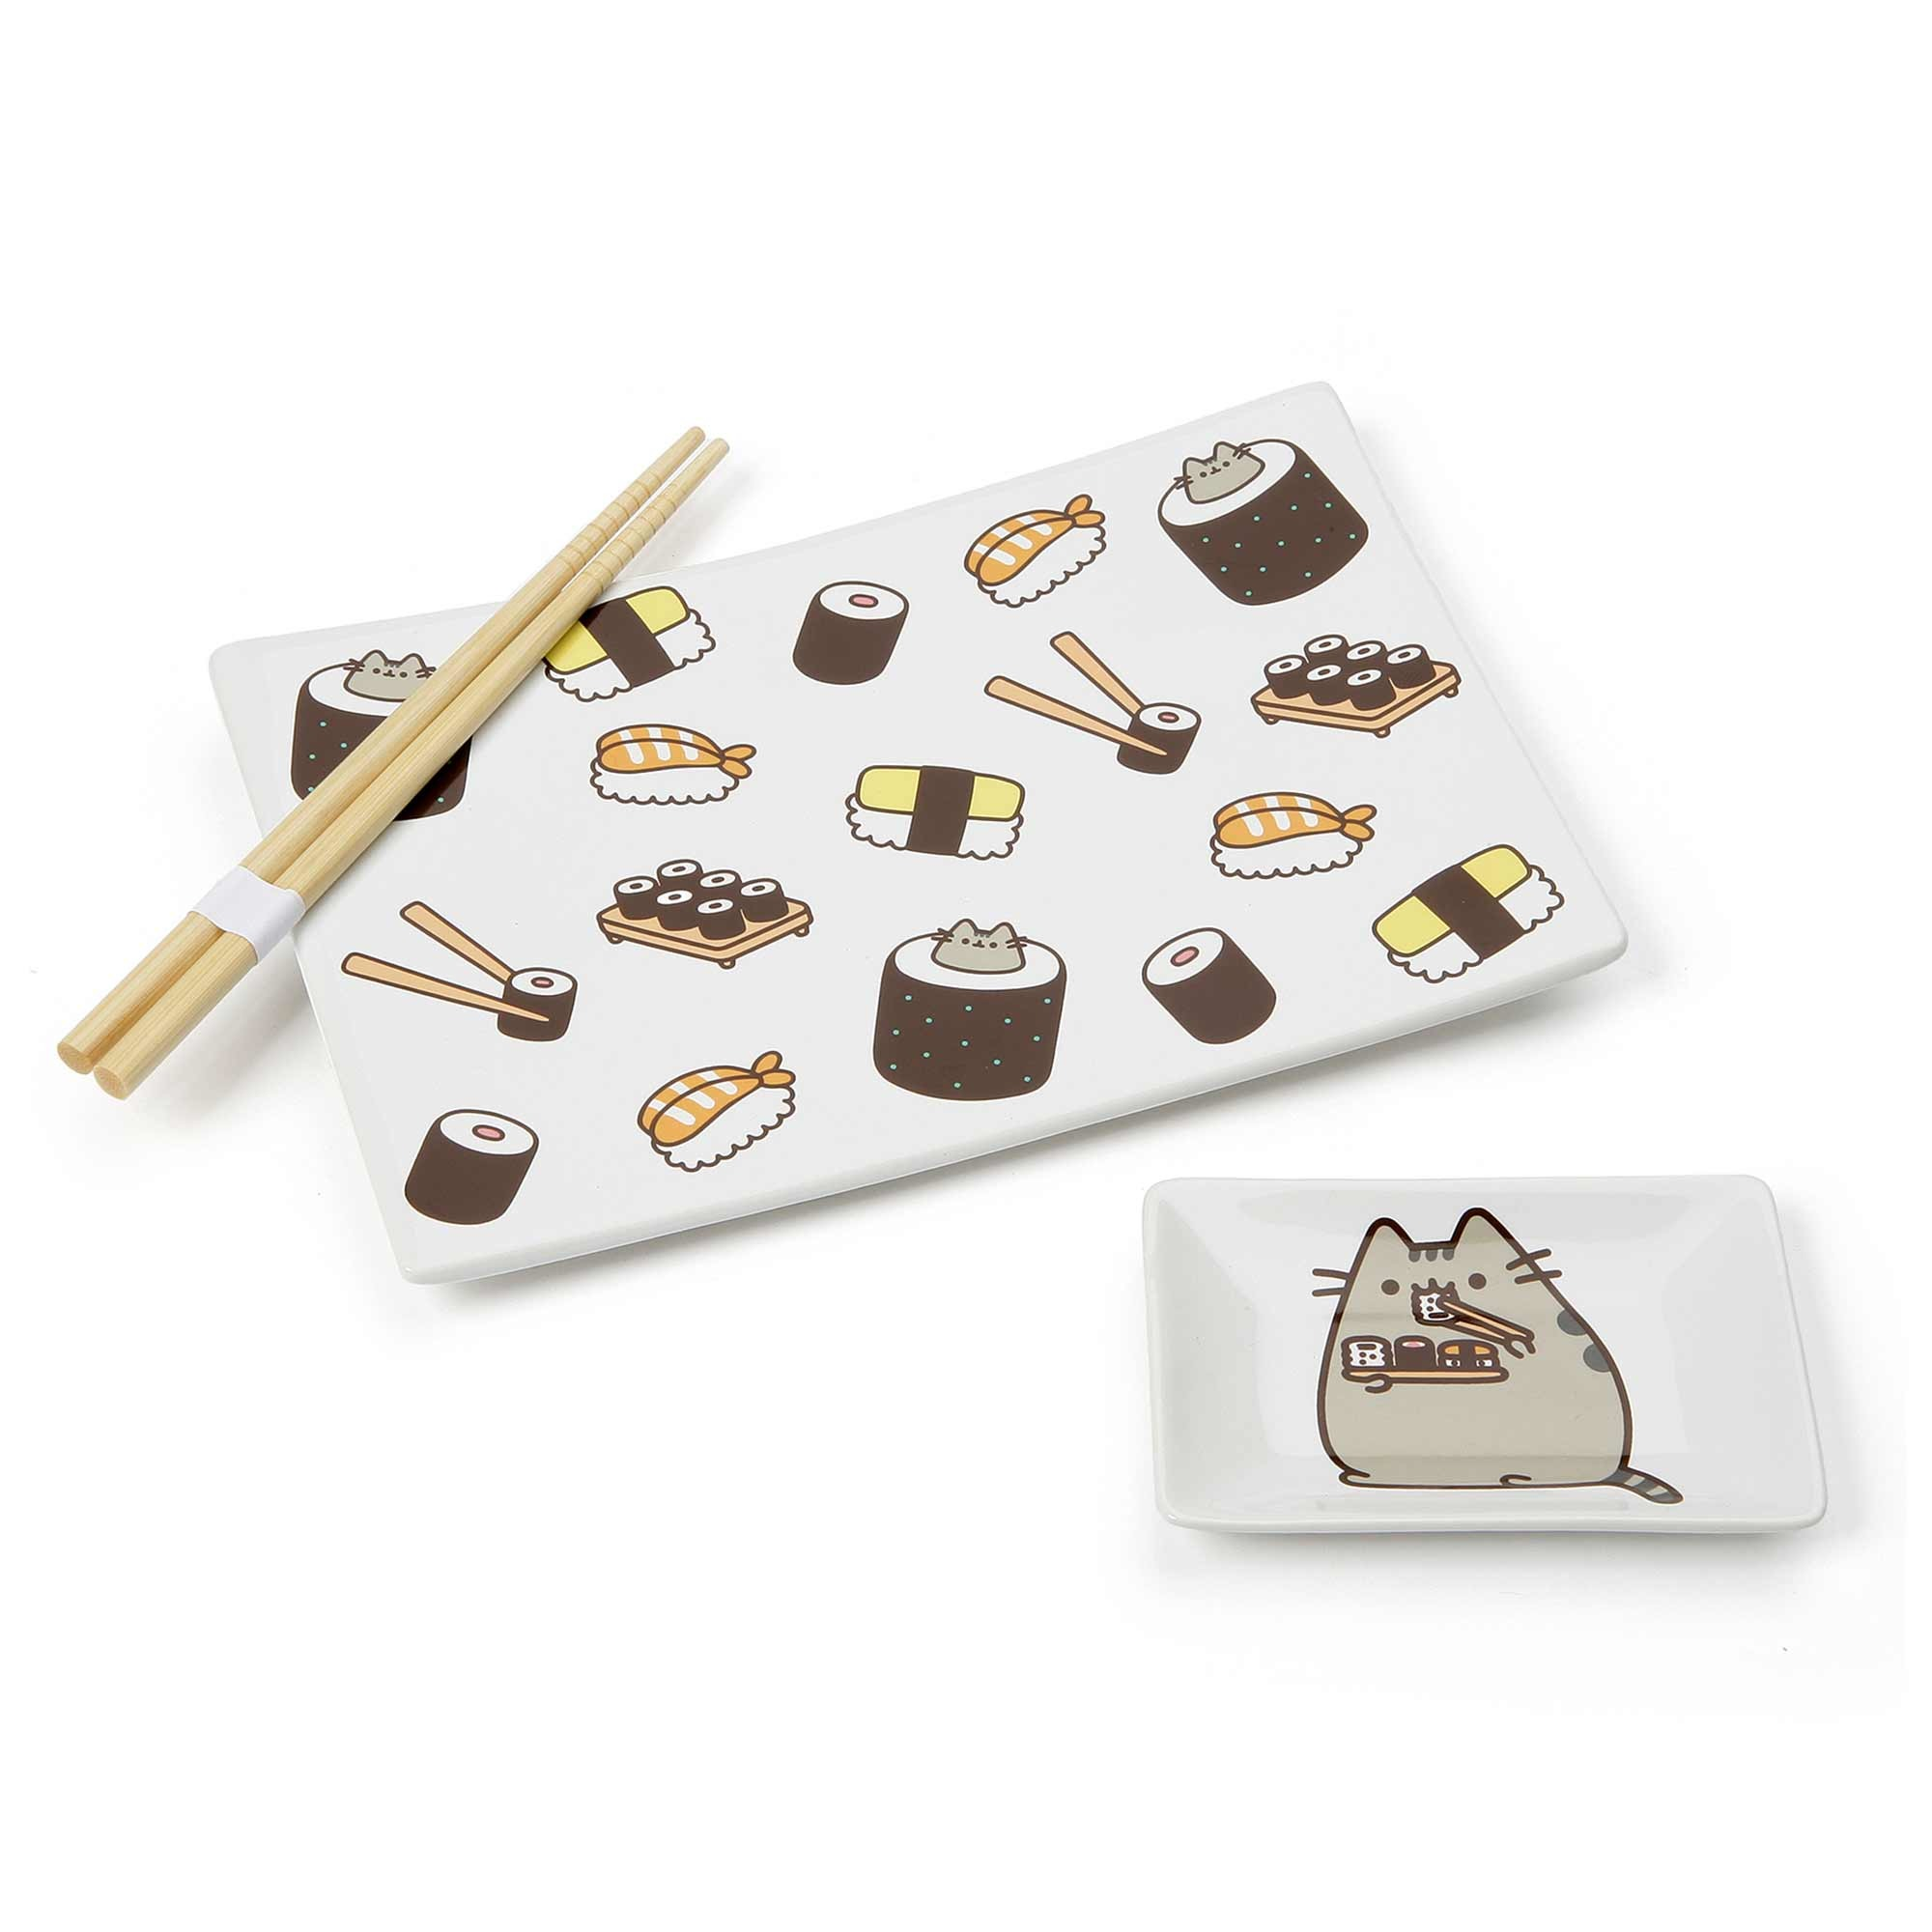 Enesco Pusheen by Our Name is Mud Stoneware Sushi Tray and Soy Dish with Chopsticks, 3 Pieces, White